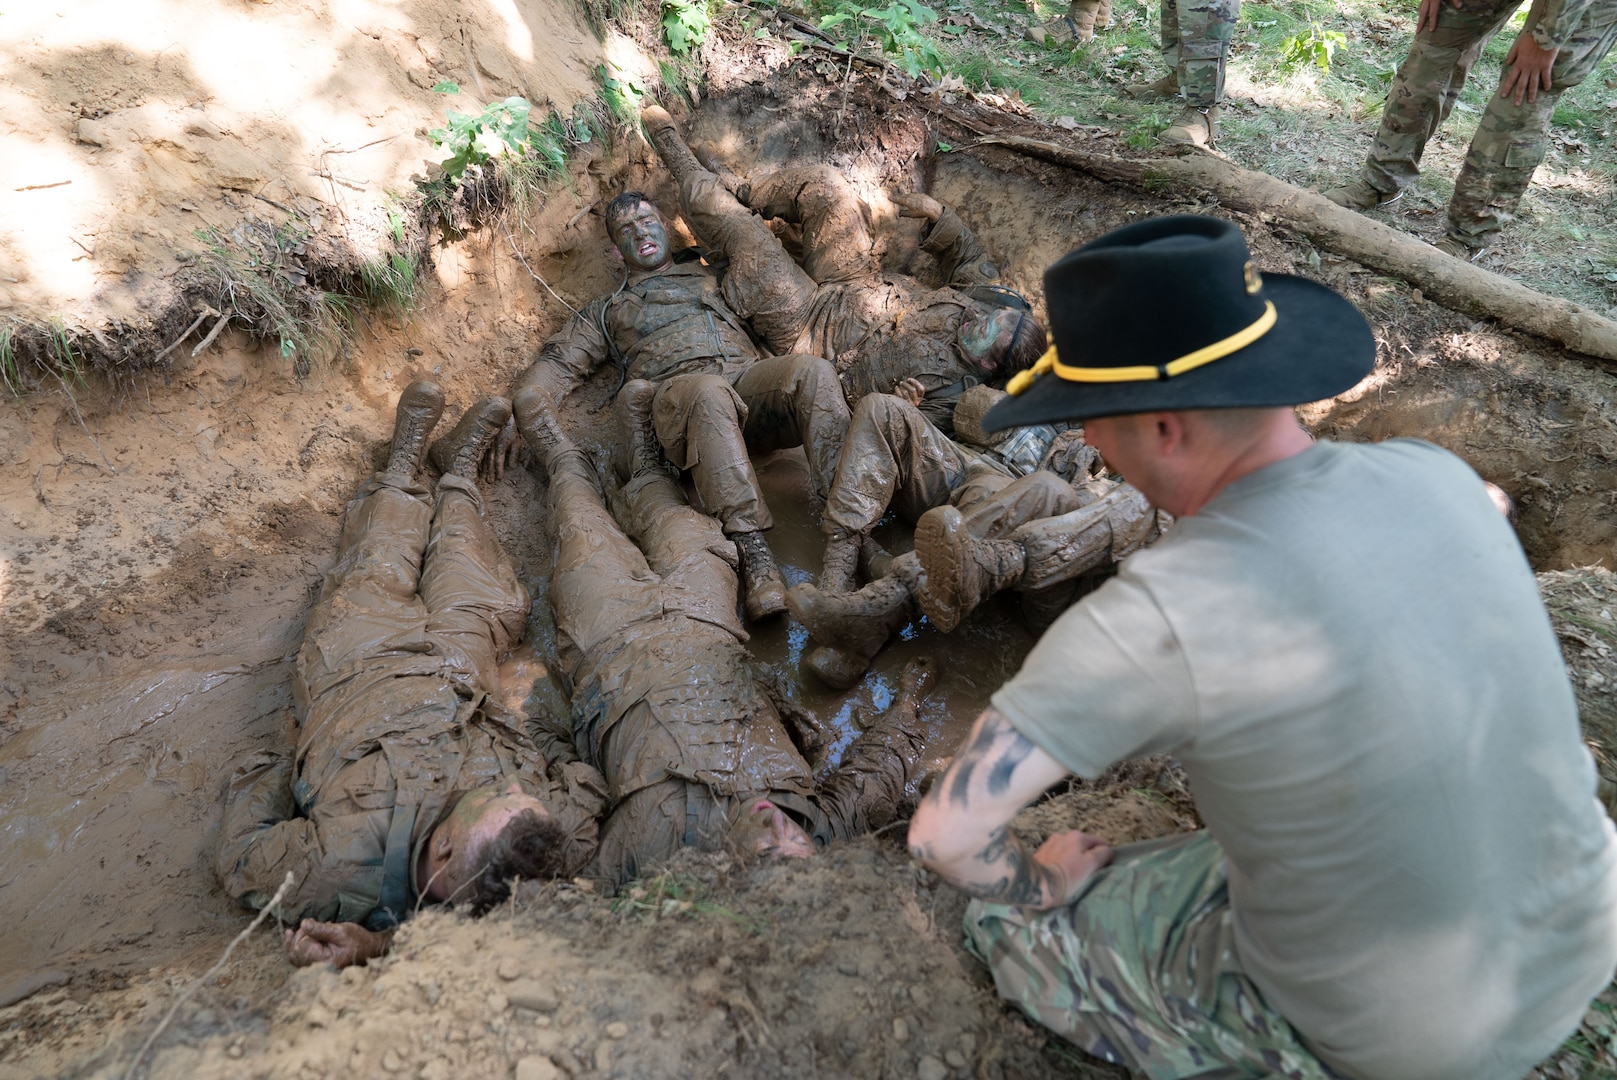 After crawling through a muddy trench, Soldiers in the Wisconsin Army National Guard's 1st Squadron, 105th Cavalry, are quizzed on cavalry knowledge as part of a voluntary qualification course known as a spur ride June 15, 2021, at Fort McCoy. Cavalry troopers who successfully complete the ride earn their spurs.